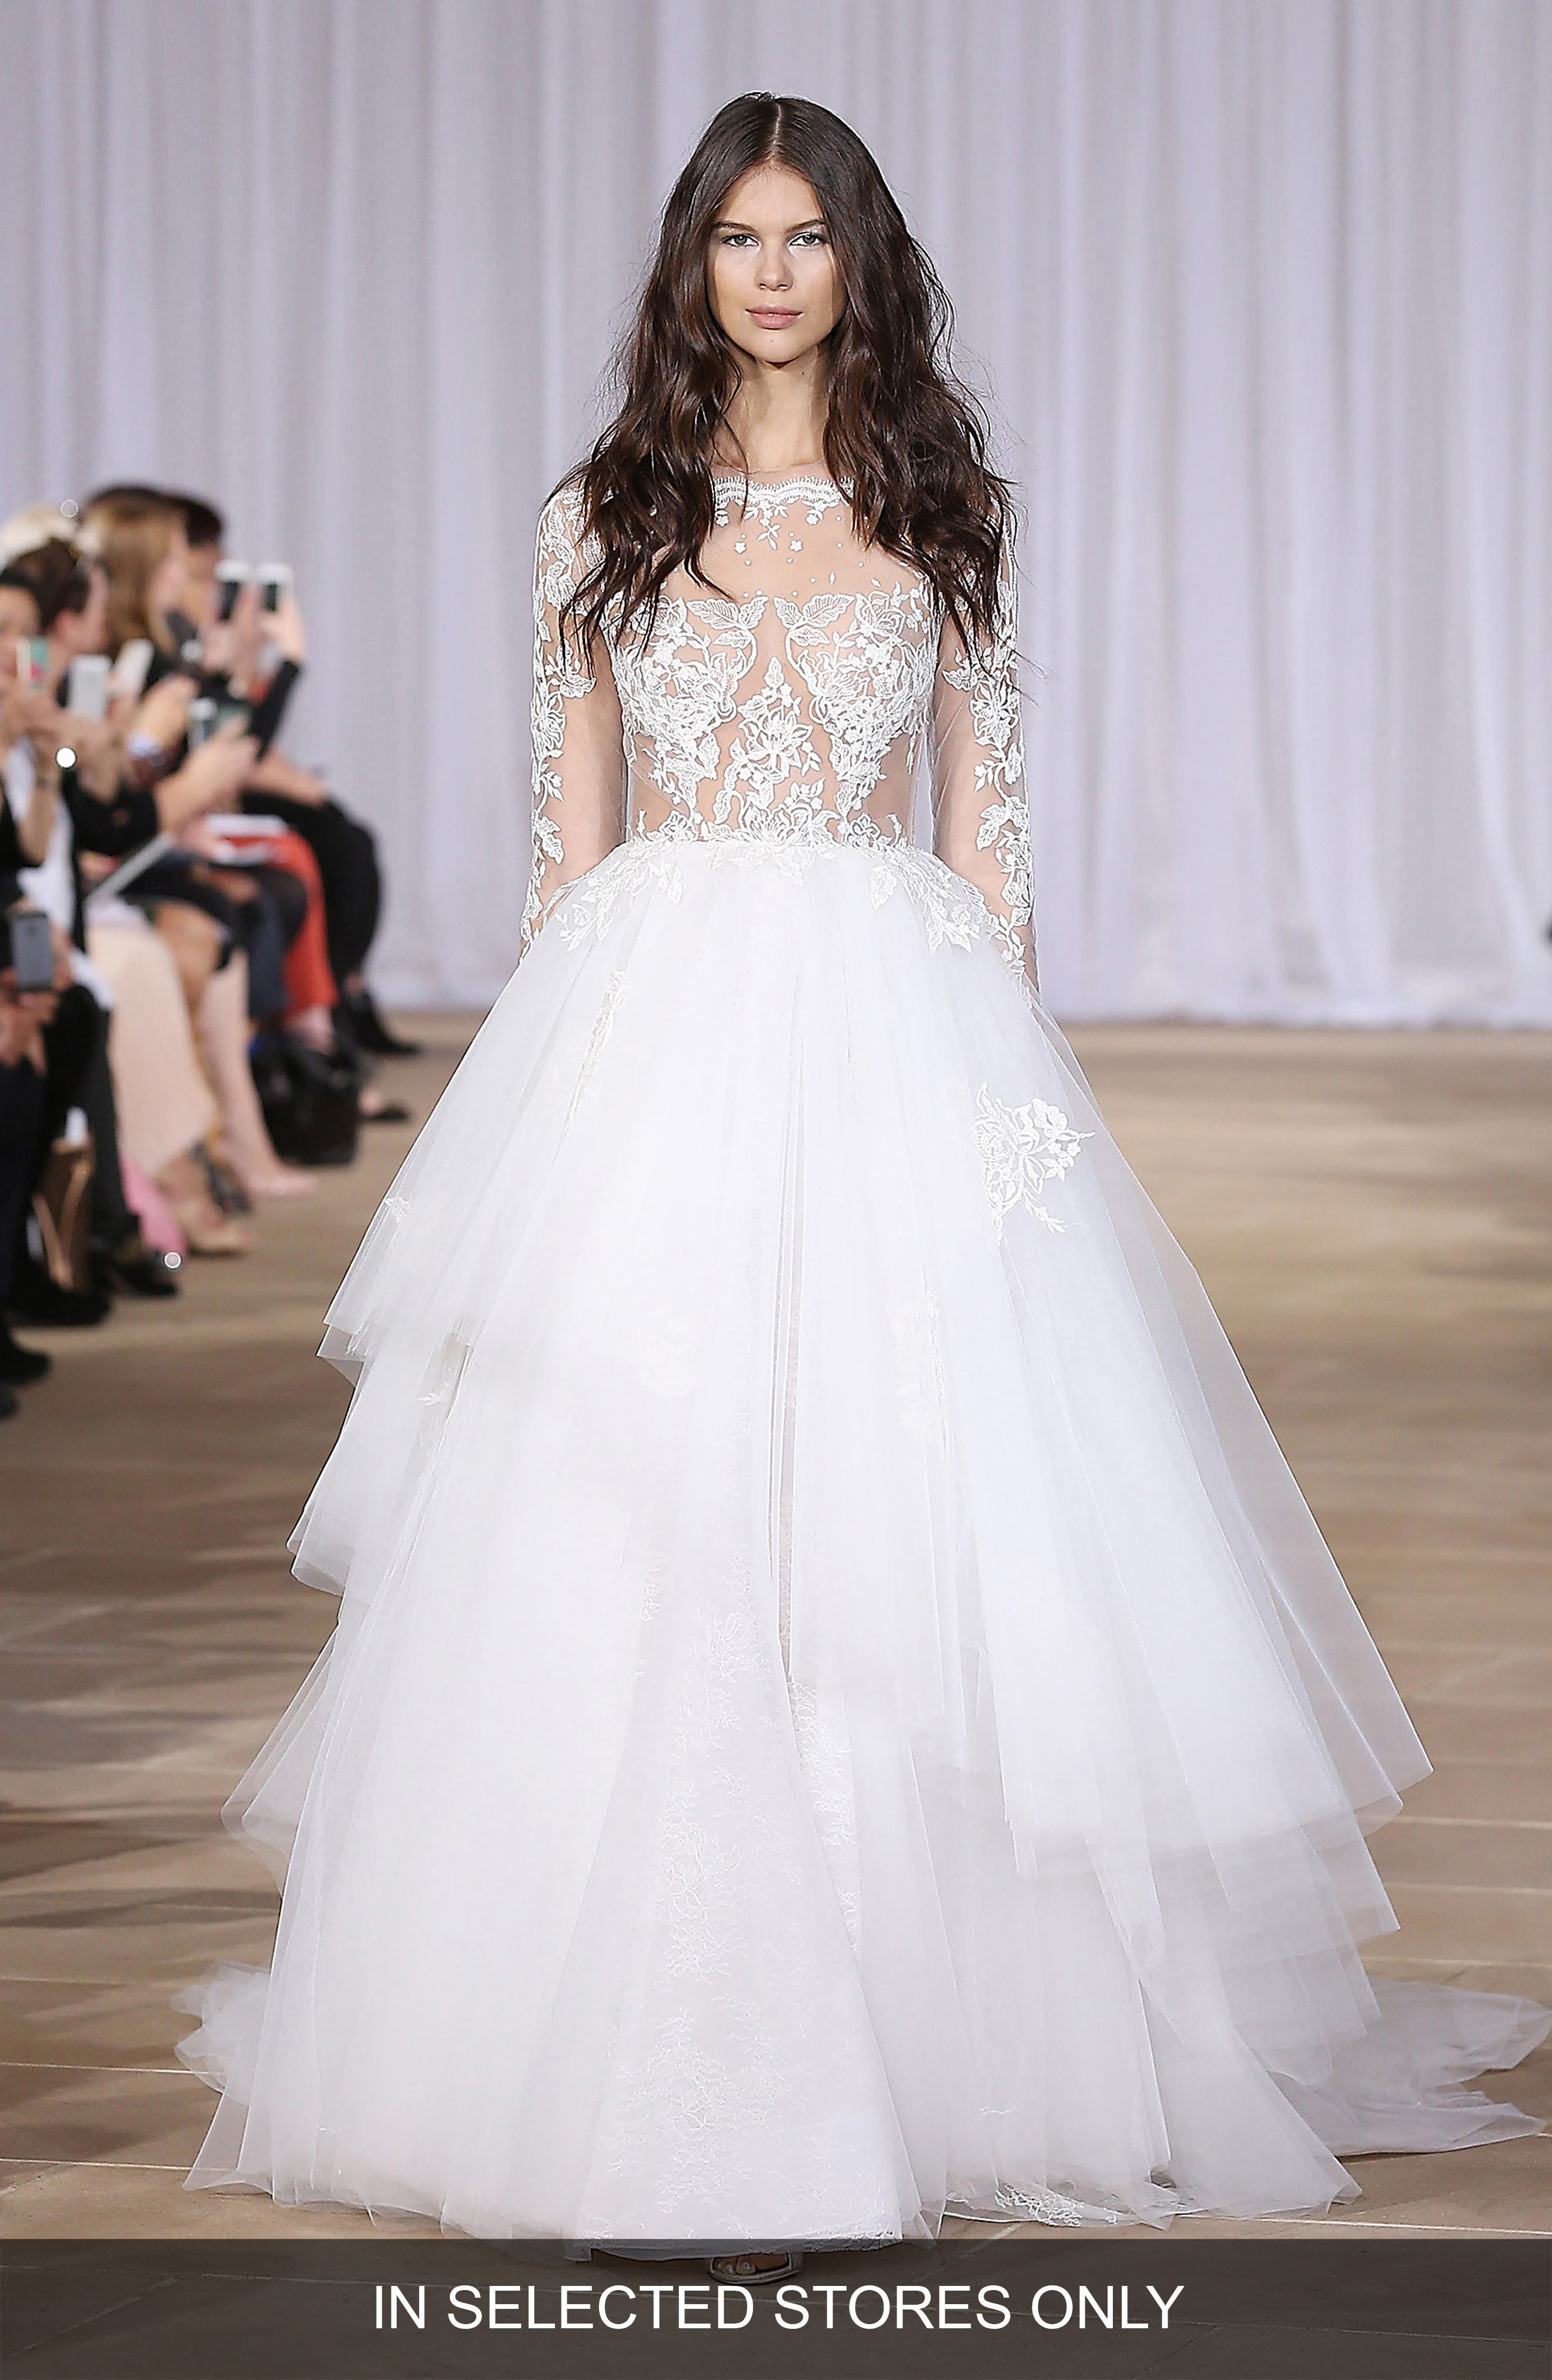 Ines Di Santo 'Aliora' Embroidered Illusion & Tulle Ballgown (In Stores Only)